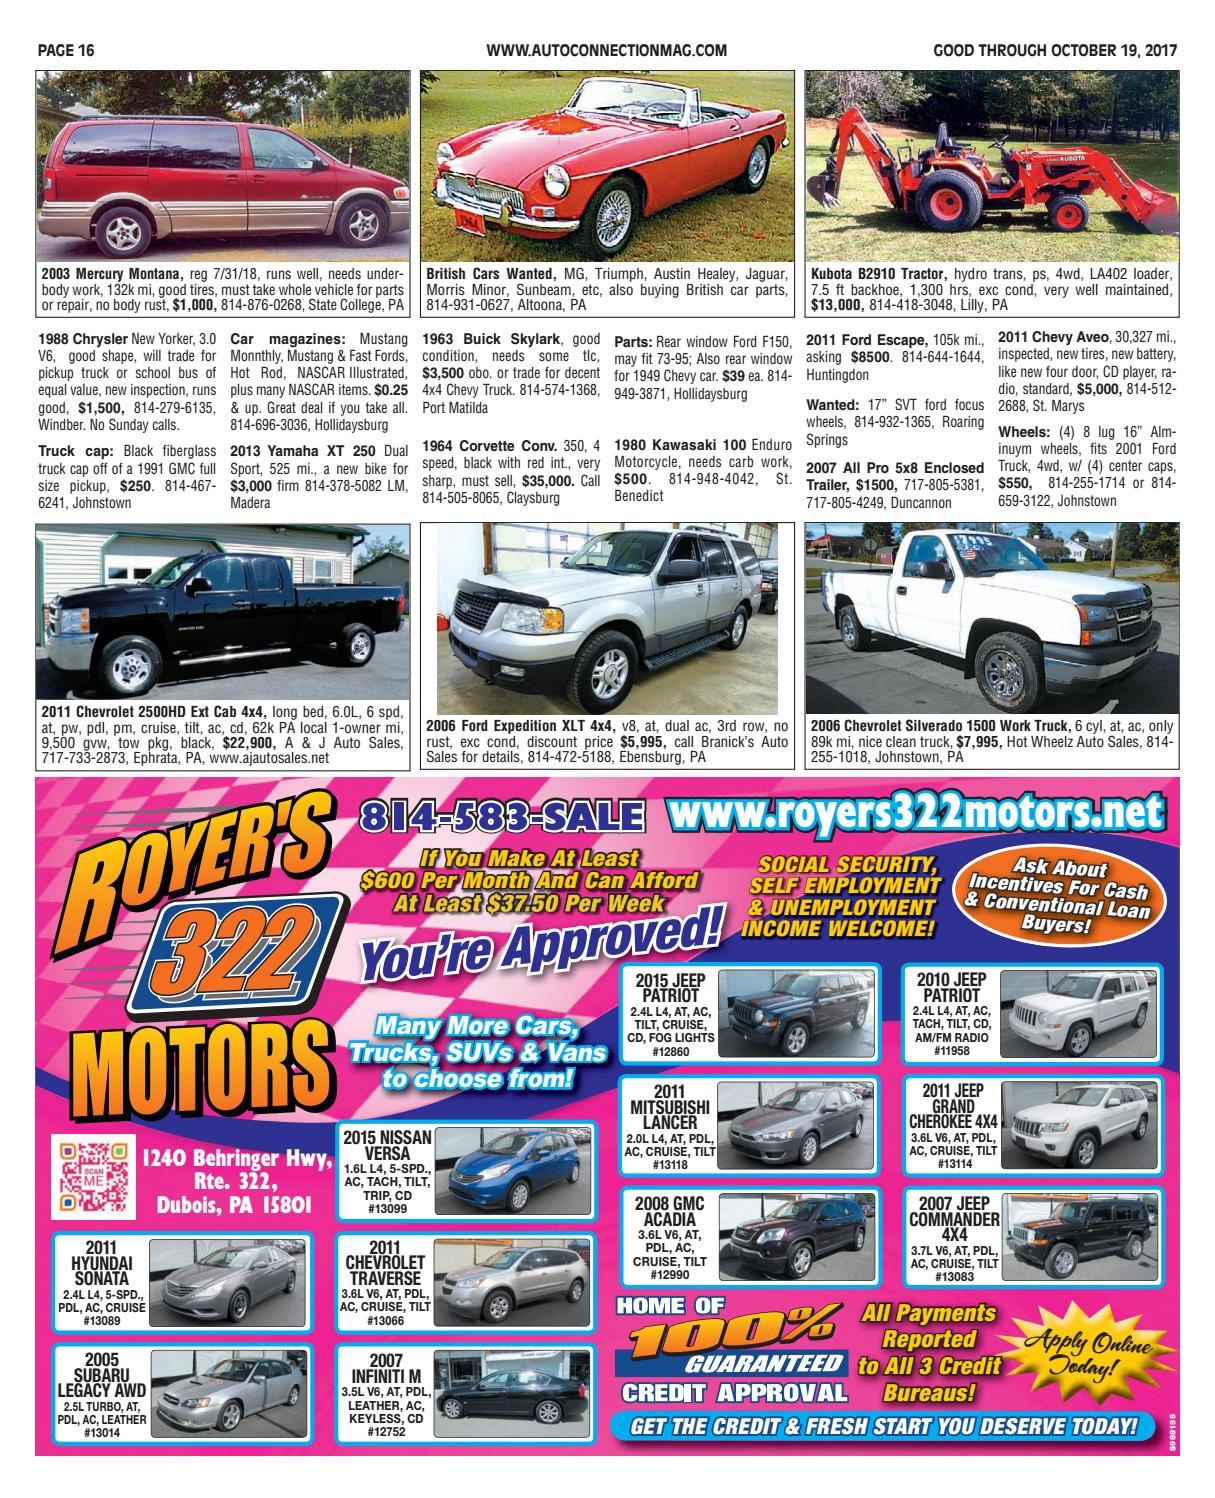 10-19-17 Auto Connection Magazine by Auto Connection Magazine - issuu